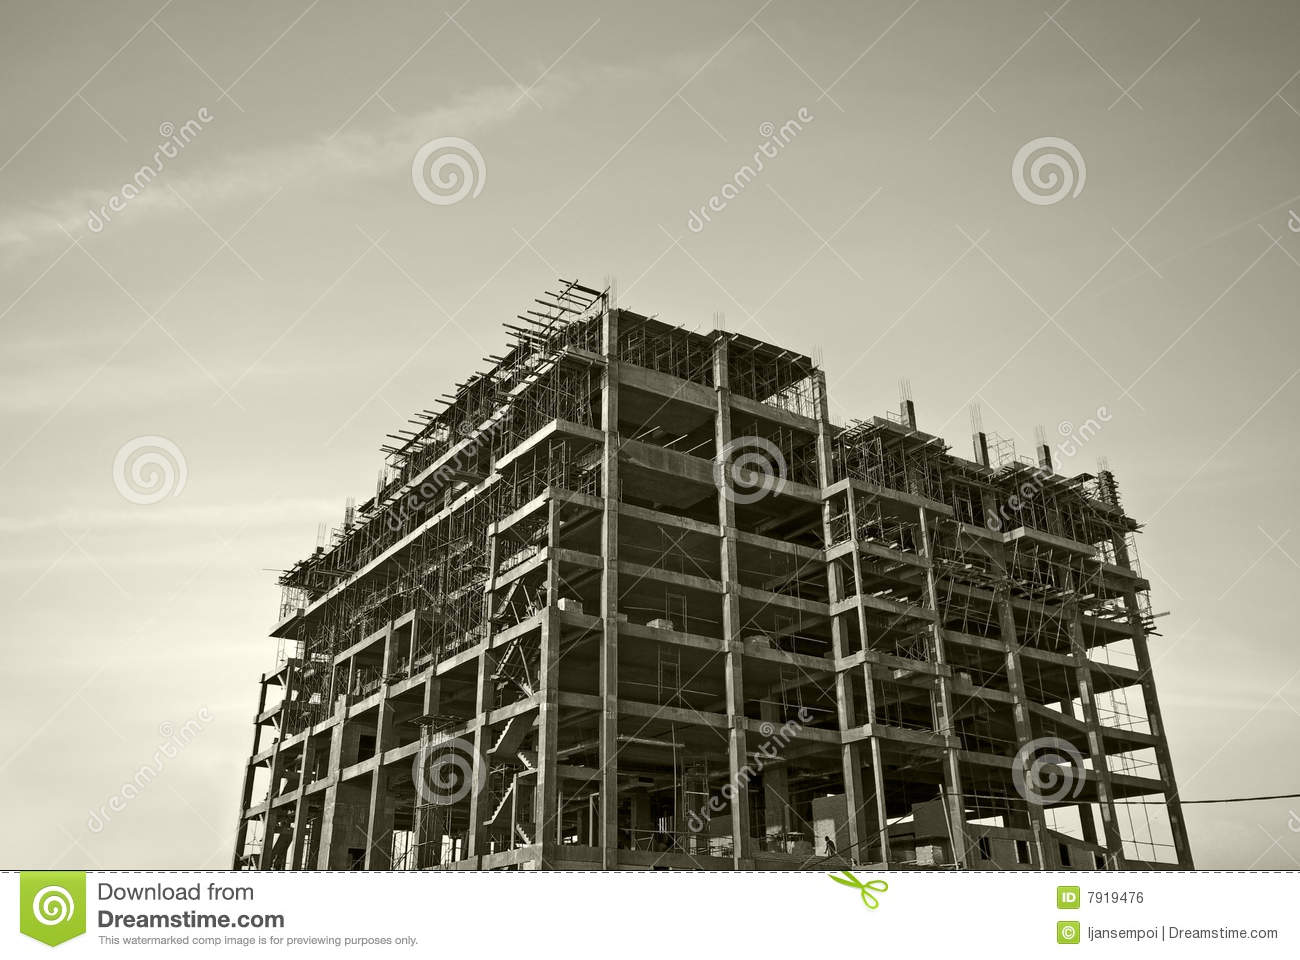 Building Structure Royalty Free Stock Image - Image: 7919476